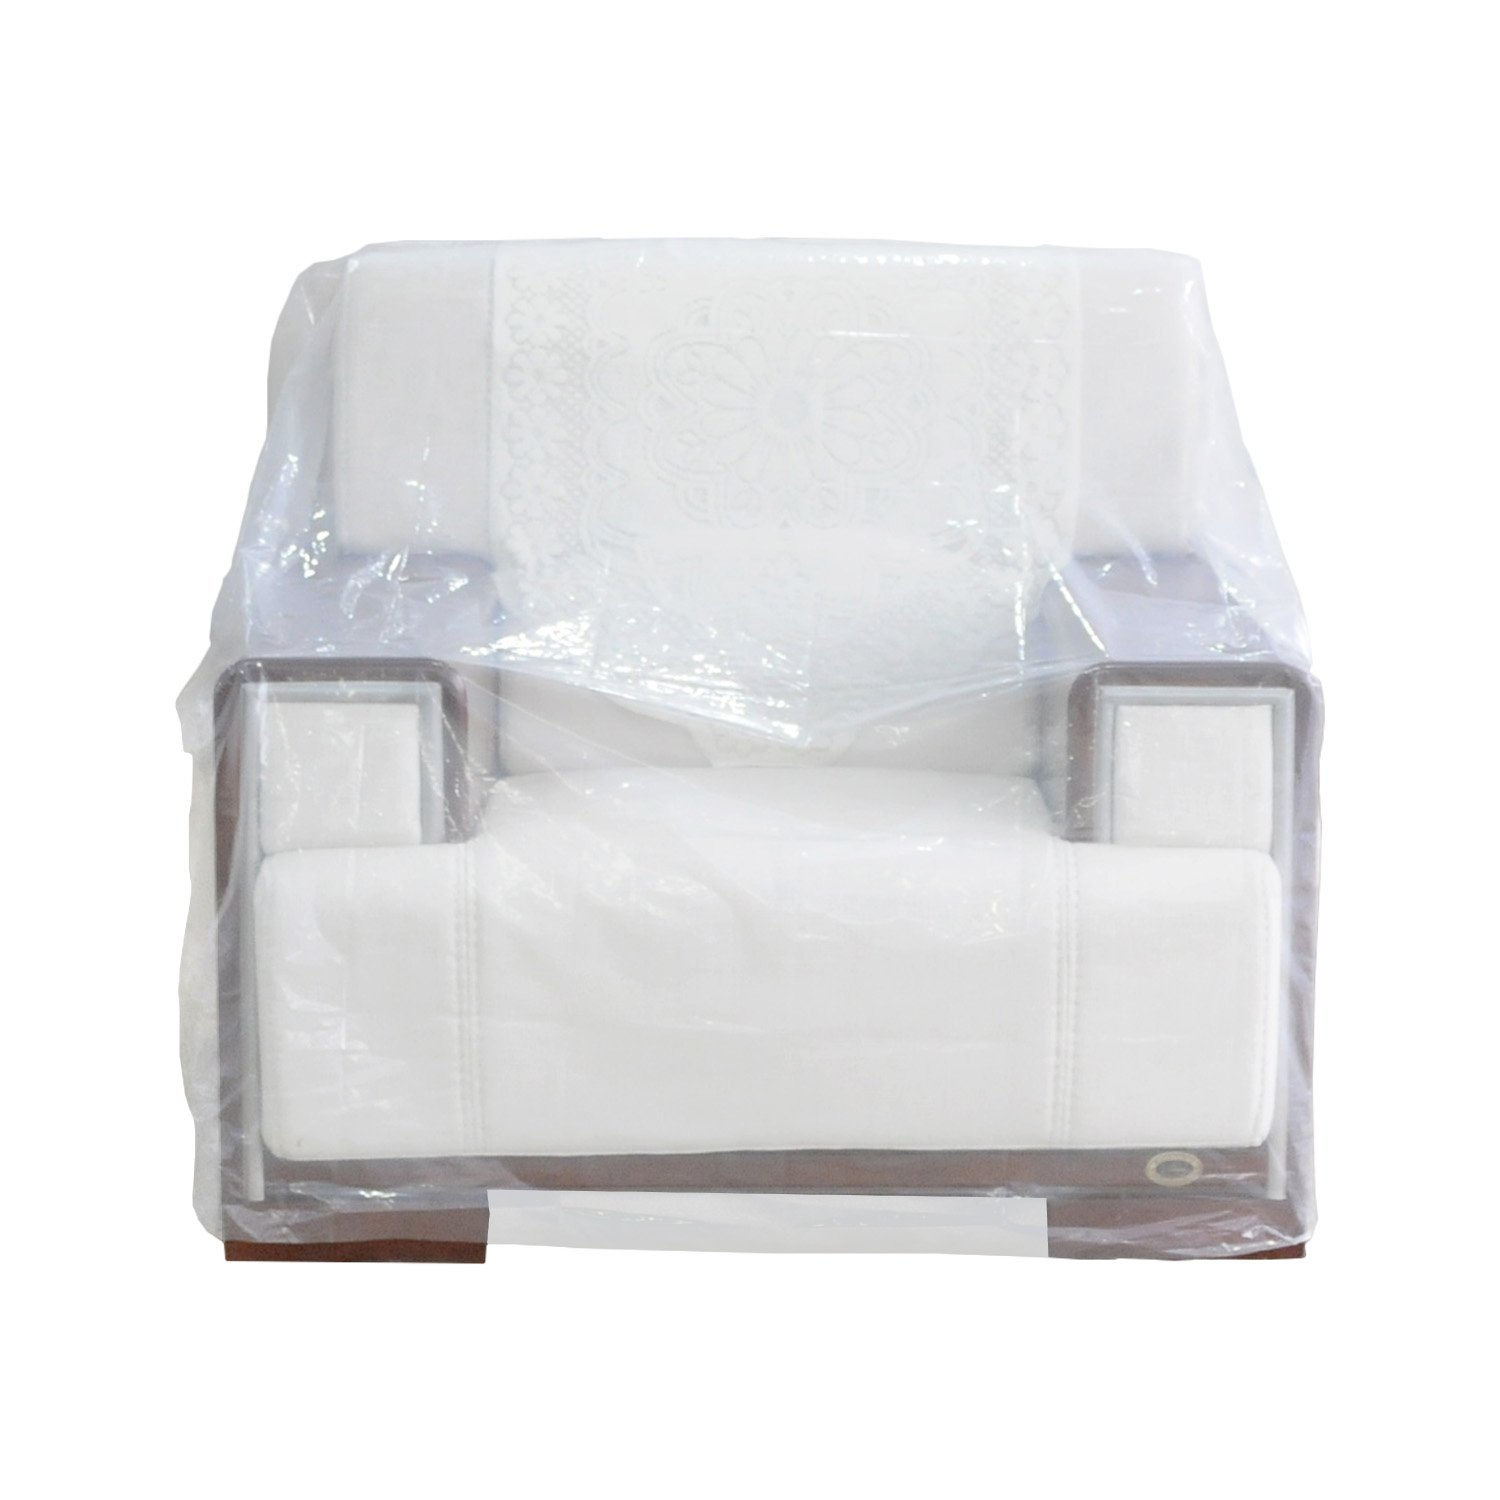 TopSoon Plastic Armchair Cover Sofa Cover Furniture Bags for Moving 46-inch by 76-inch Clear(Pack of 2)